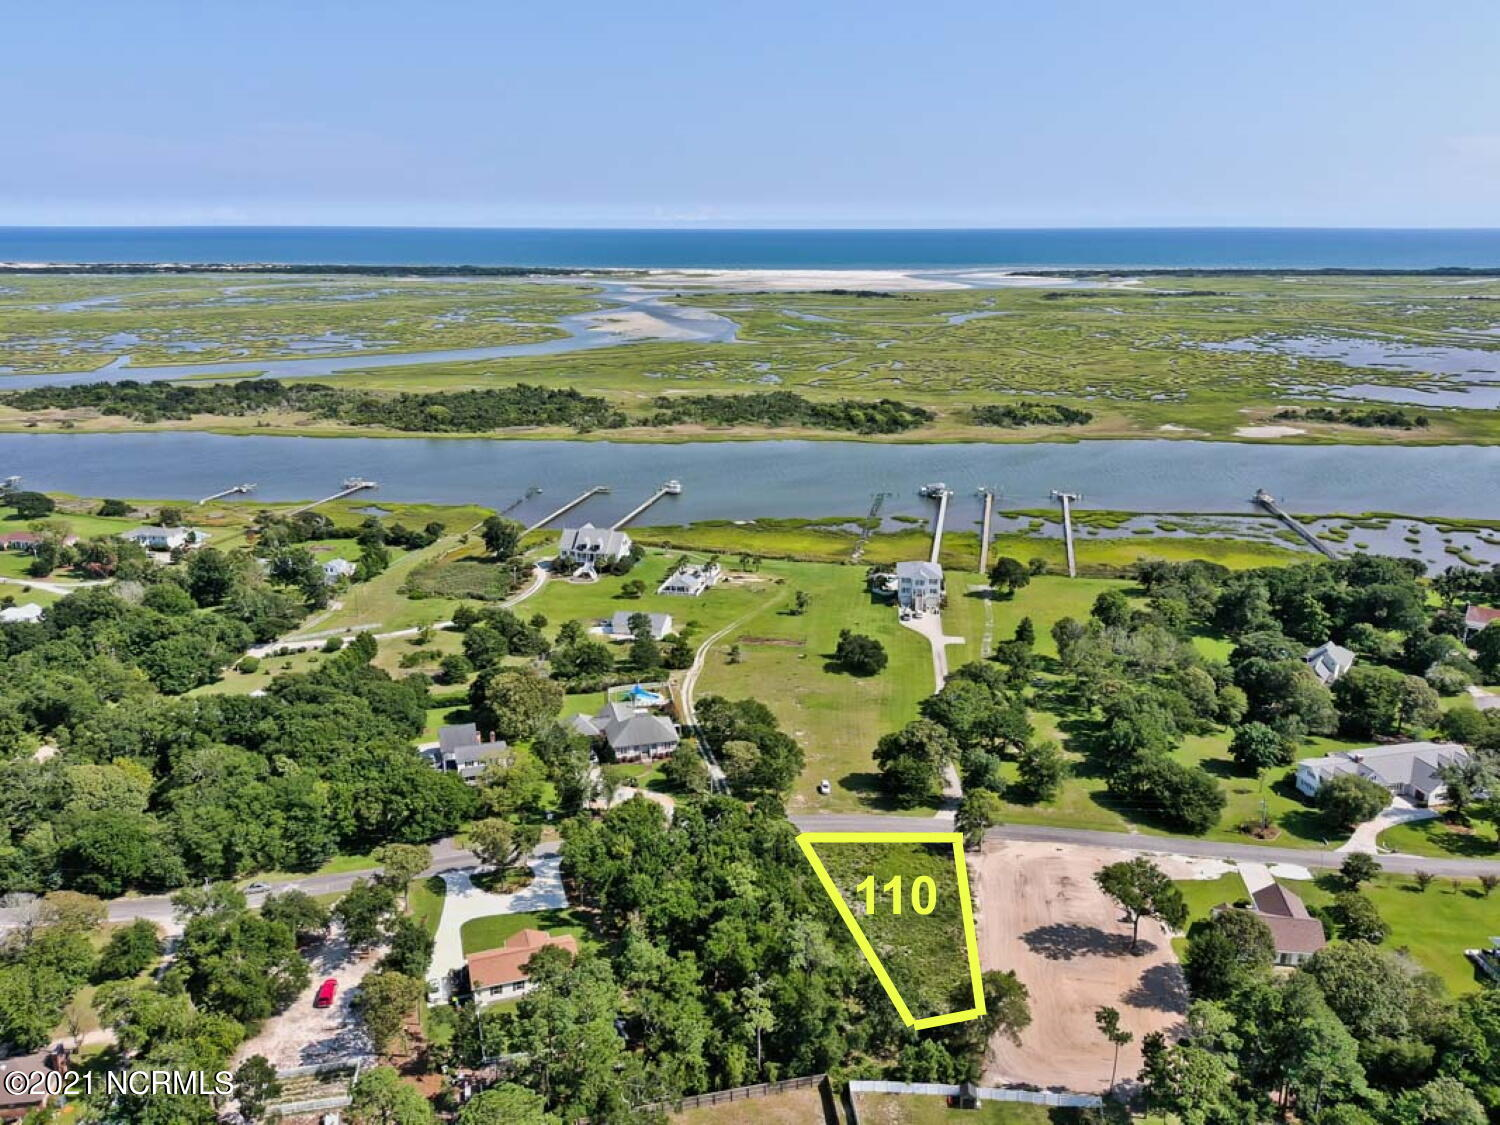 Water view lot in Vista Cay, right across the street from the Intracoastal Waterway. Water view from ground level, but could be even better depending on your floor plan. Has septic permit for 3 bedroom home. Excellent location near the back gate to Camp Lejuene, or a fast drive in to Jacksonville. Schools and shopping nearby too. Great site for your new home!